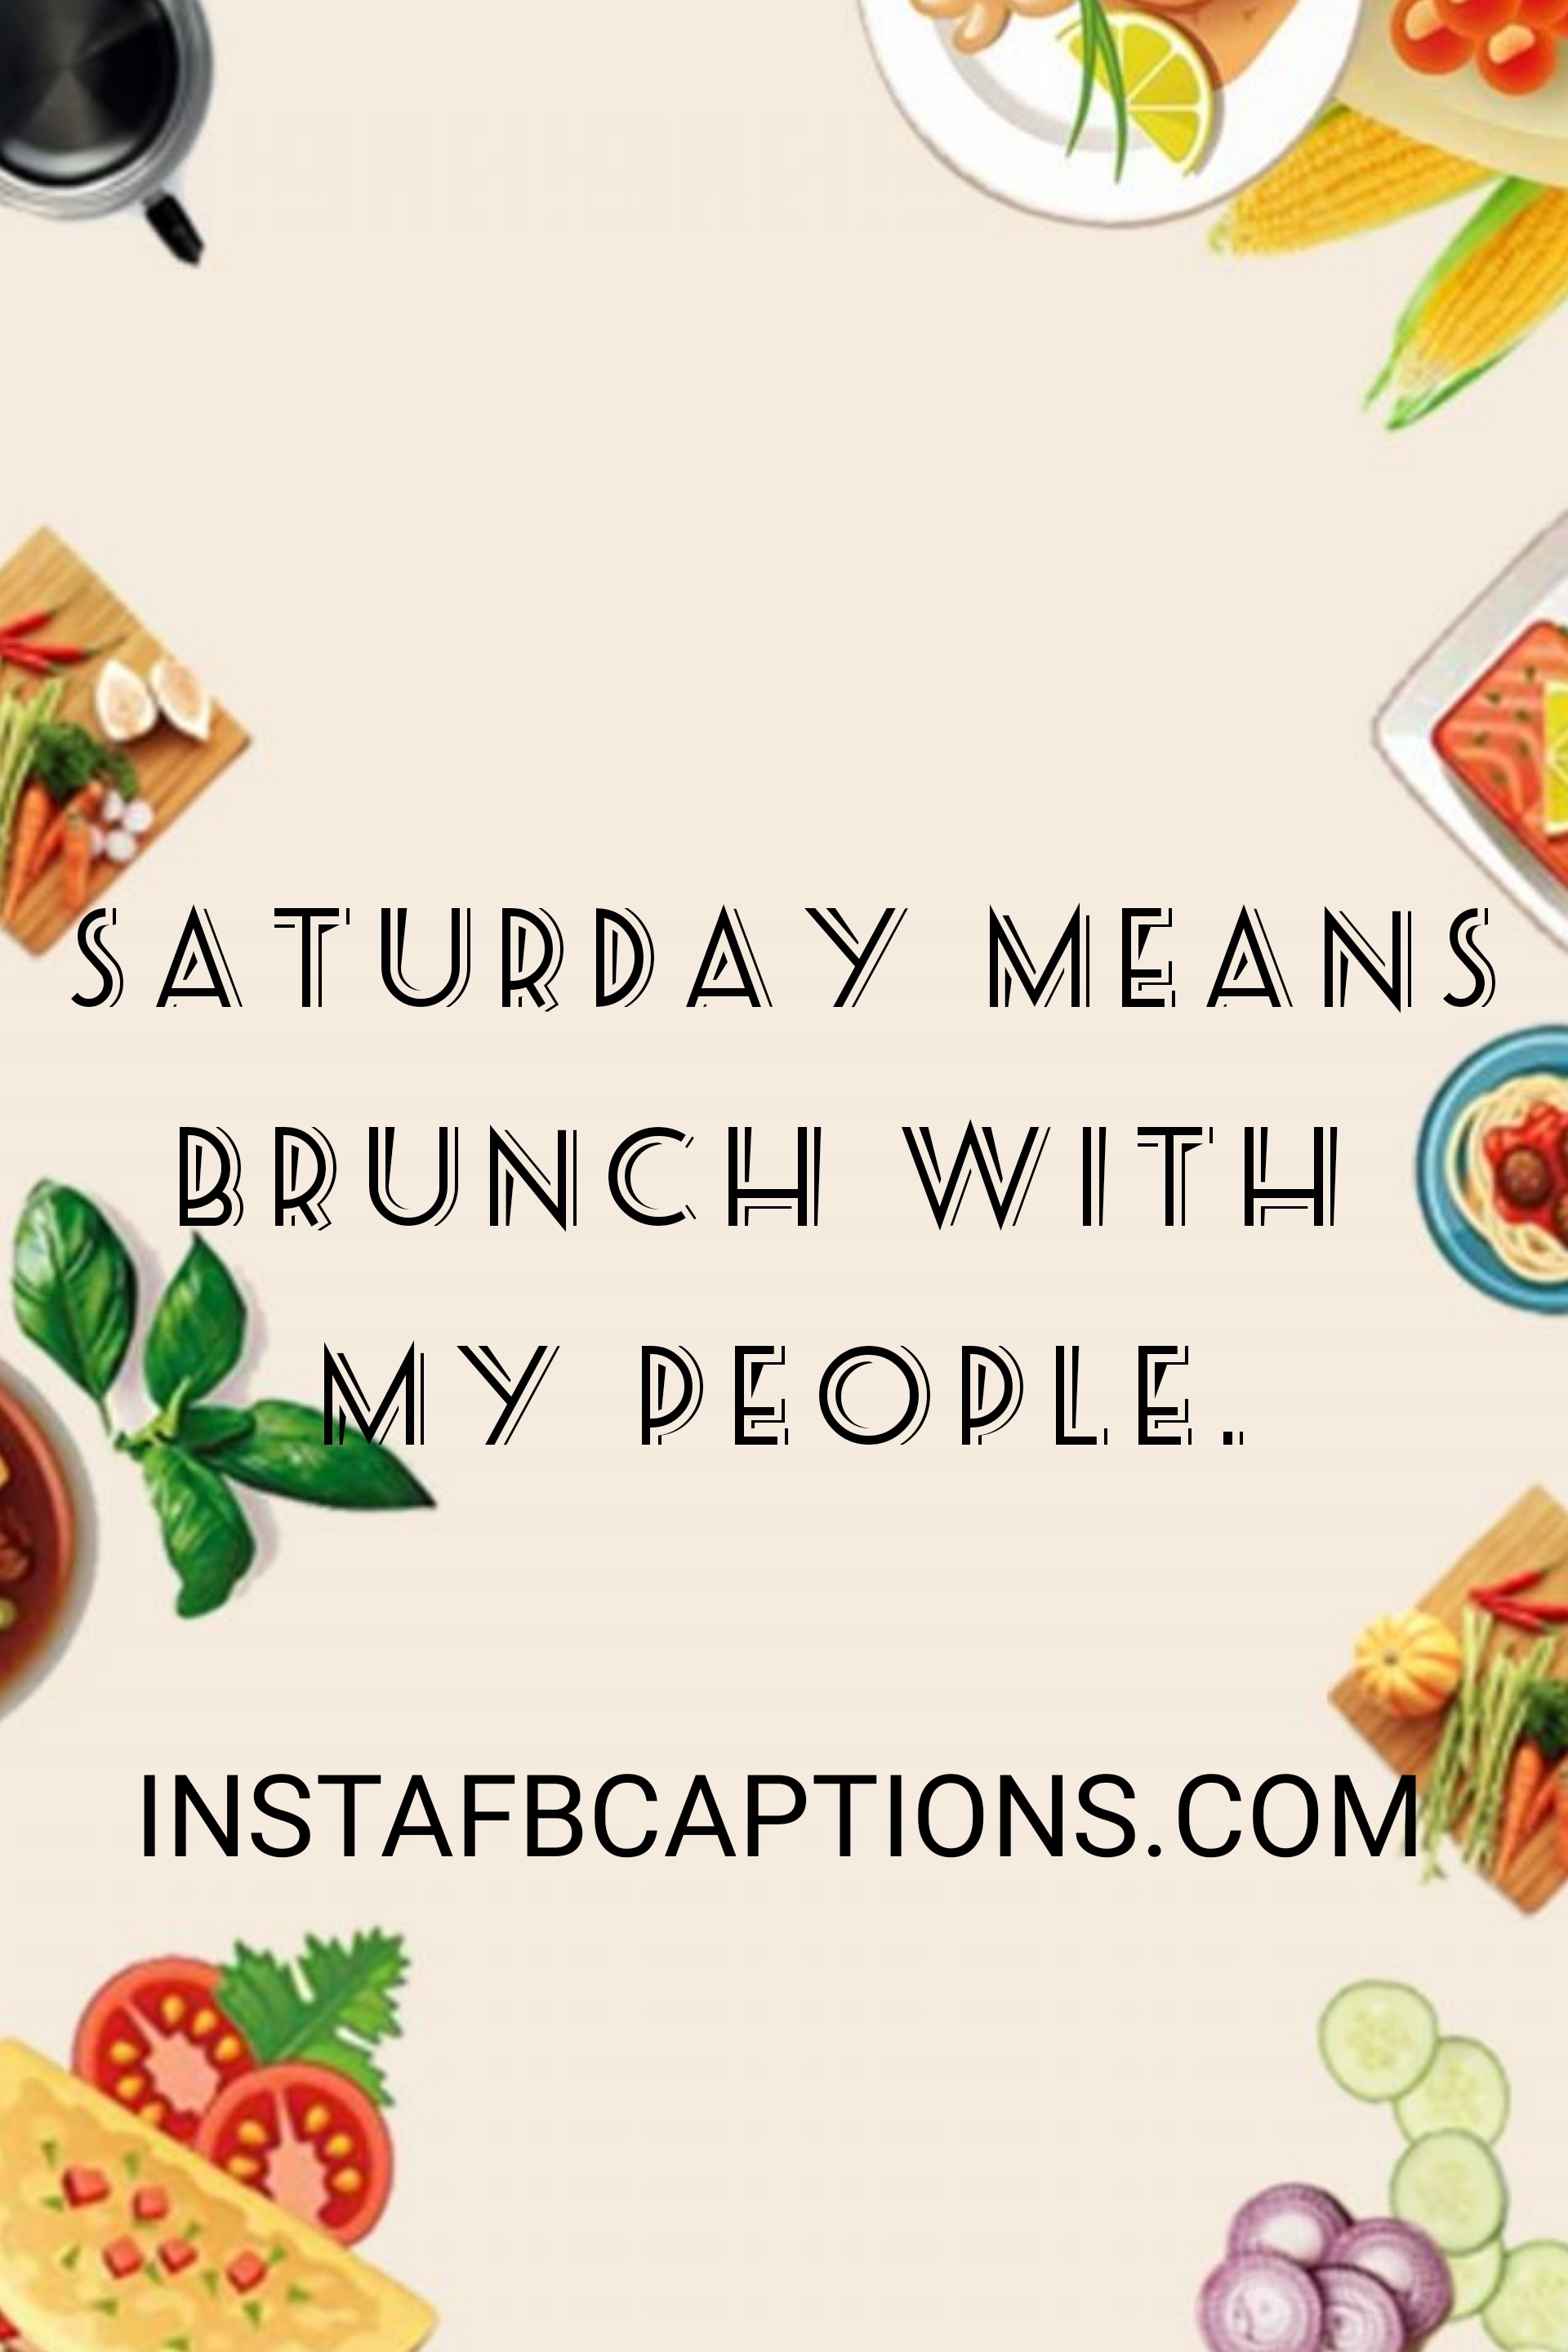 A Tuesday Means Brunch With My People  - a tuesday means brunch with my people - 500+ WEEKEND Instagram Captions 2021